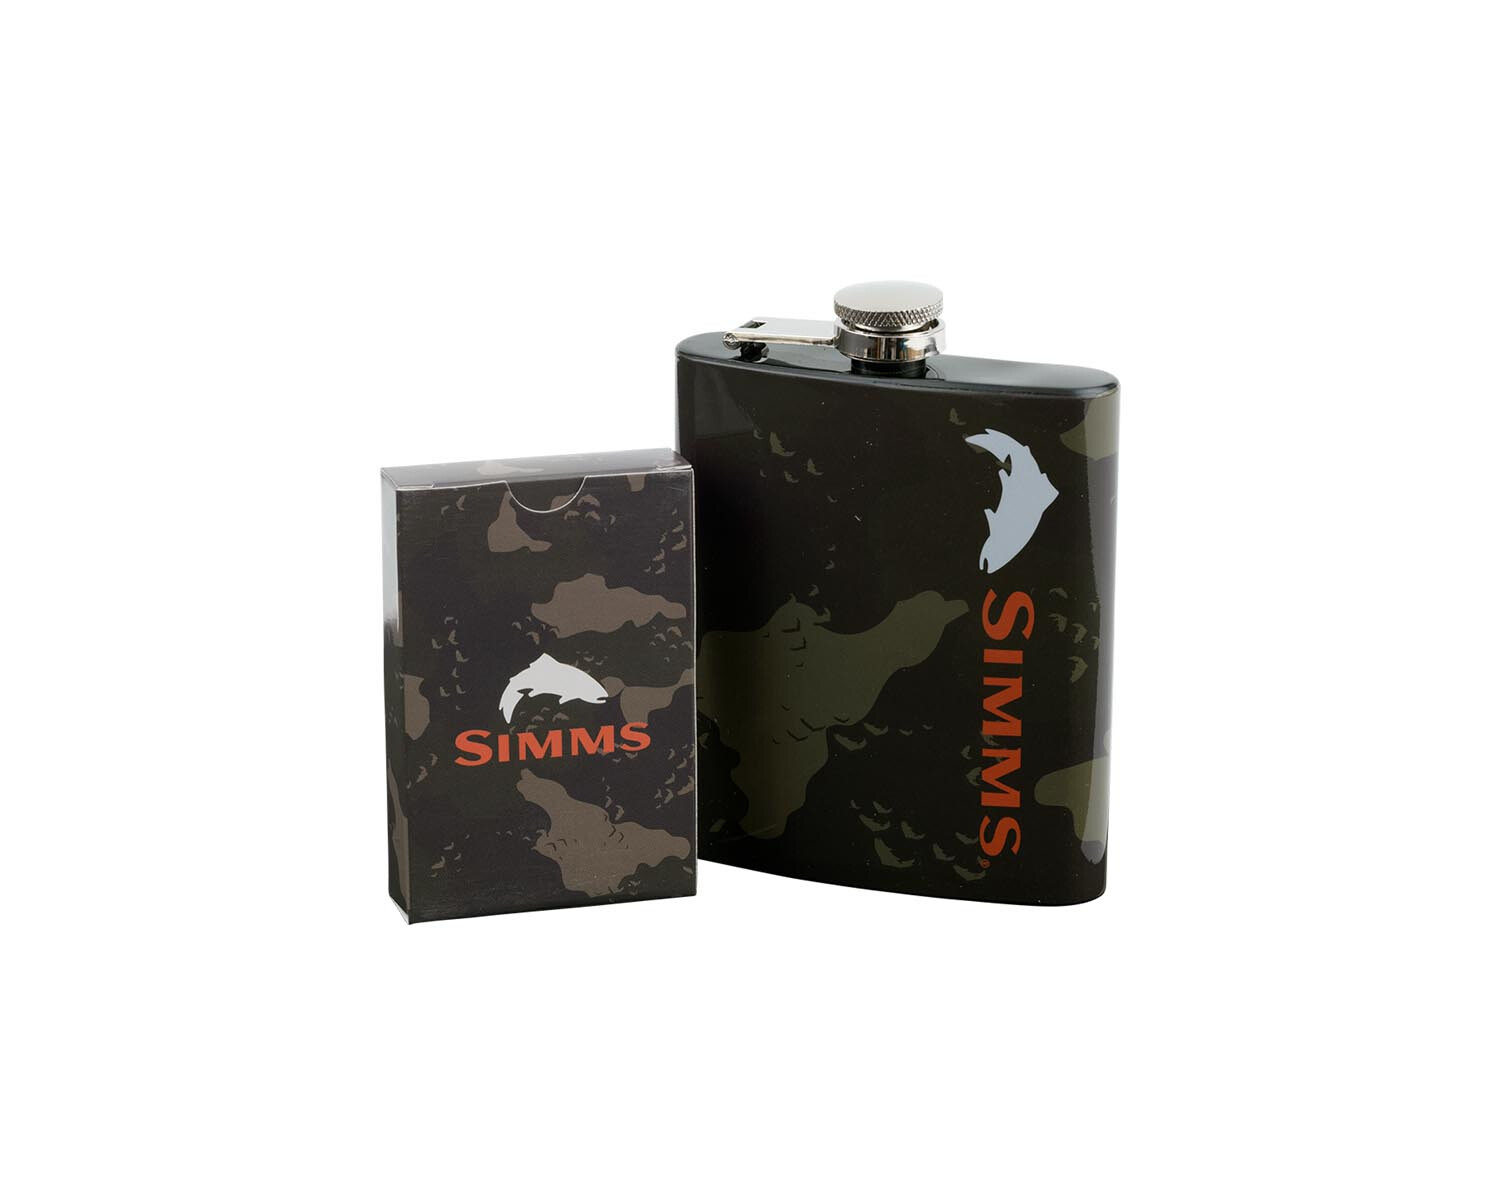 Simms Camp Gift Pack - Black